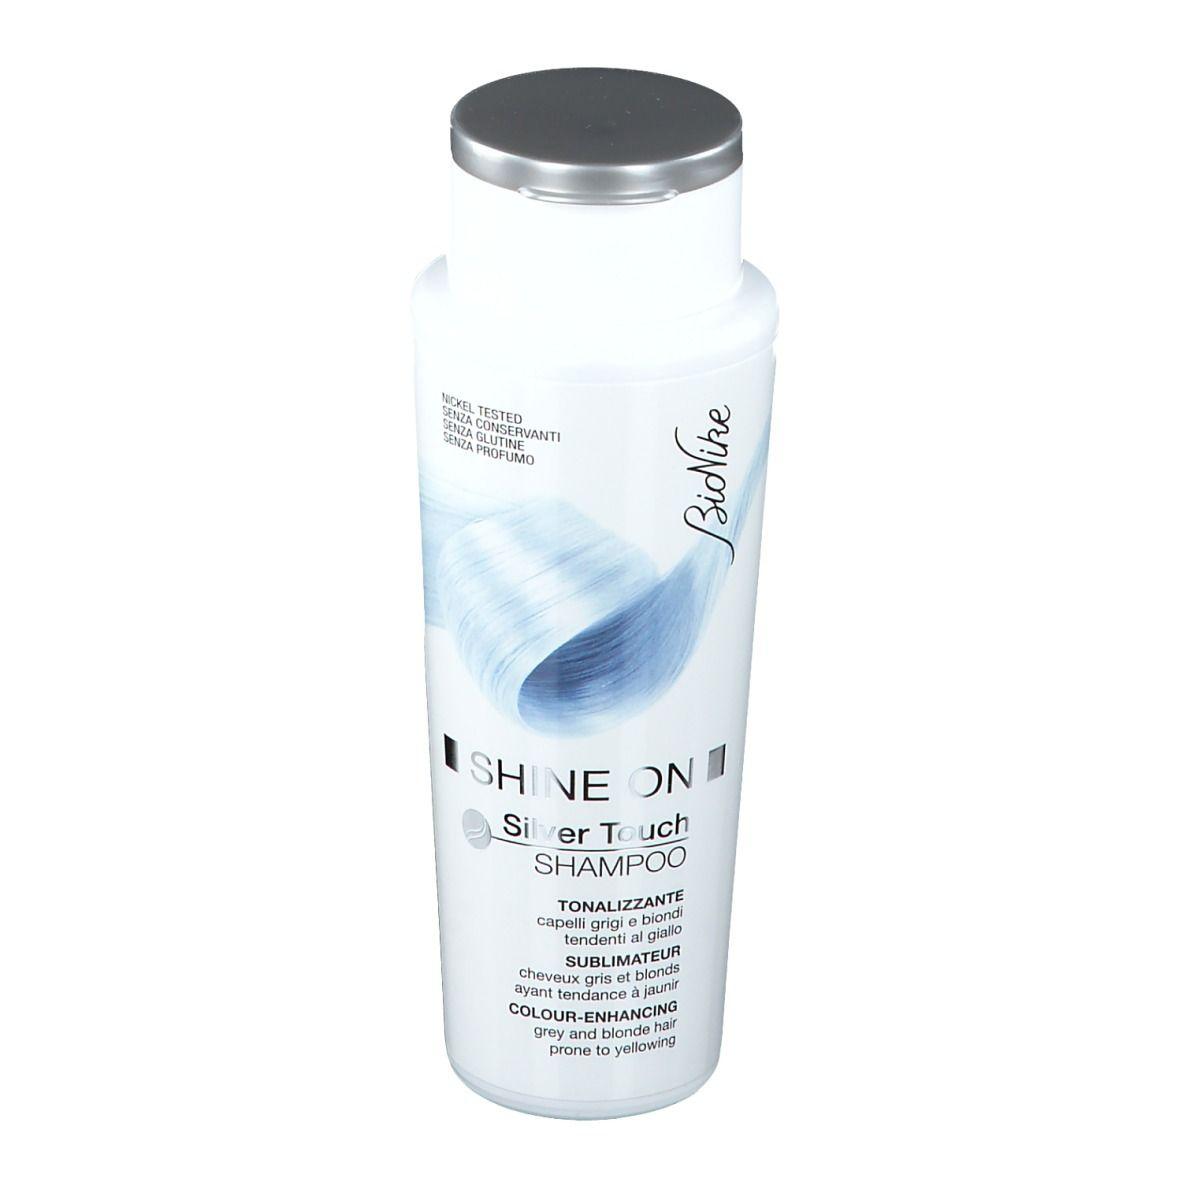 BioNike Shine ON Silver Touch Shampoing publicateur